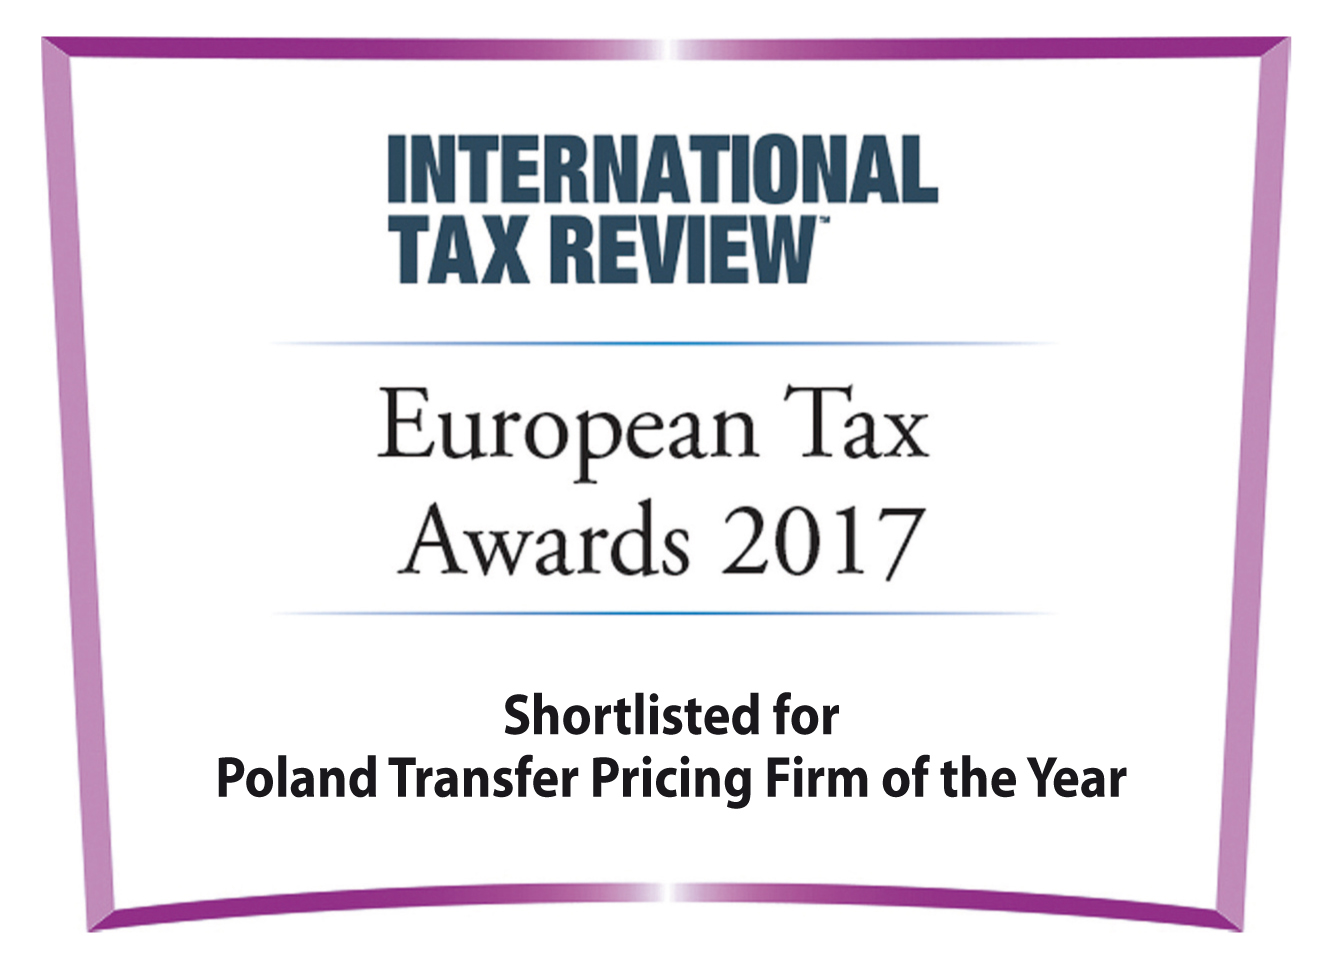 Shortlisted for Poland Transfer Pricing Firm of the Year European Tax Awards 2017 International Tax Review